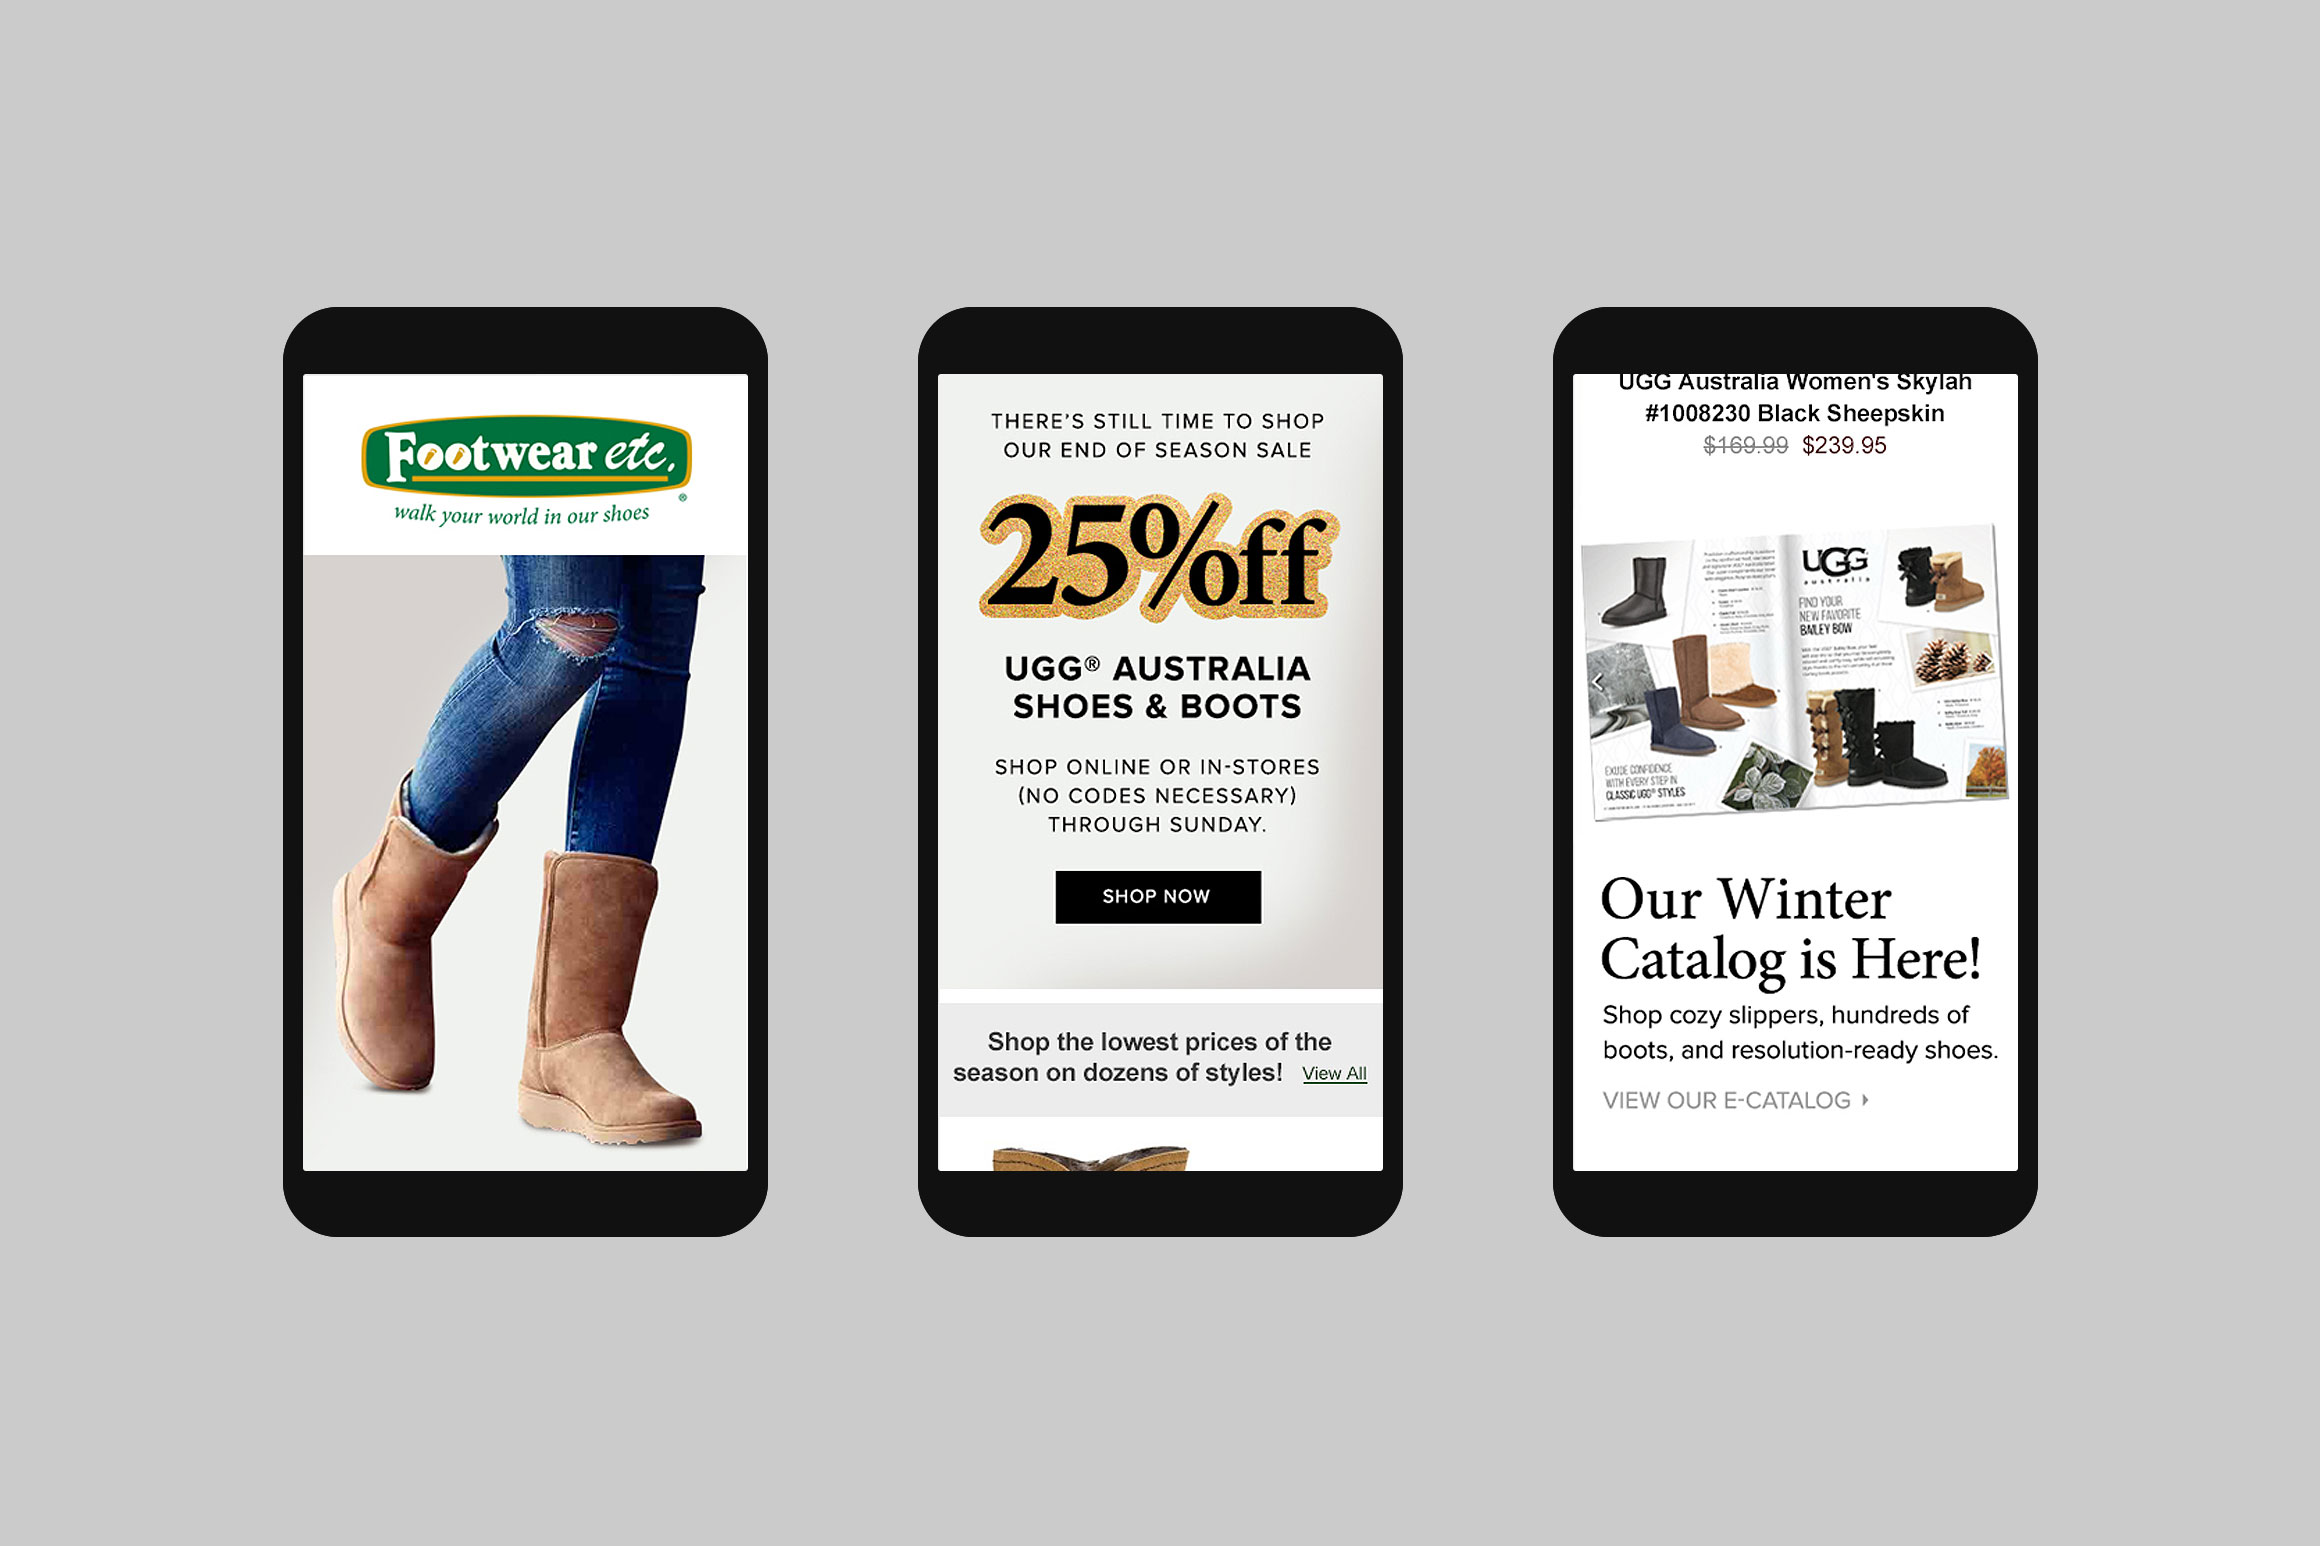 Footwear etc. Mobile Email Template #5